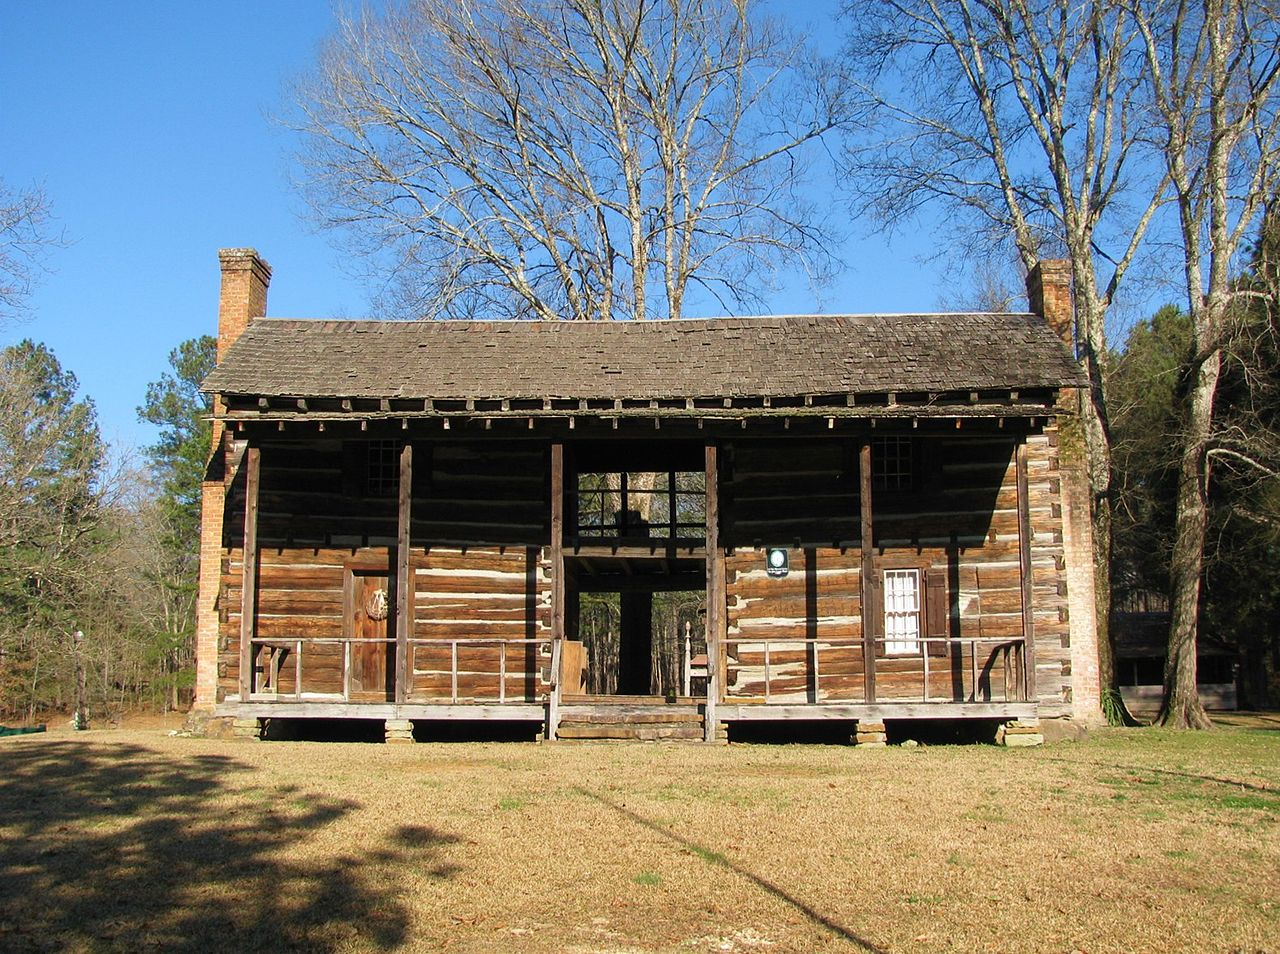 2 Story Dog  Trot style log house - The Chief George House would have looked very similar when first built.  This is The John Looney House near   Ashville, Alabama  , a rare example of a full two-story dogtrot. It was built circa 1818, during the   Alabama Territorial   period. From Wikipedia